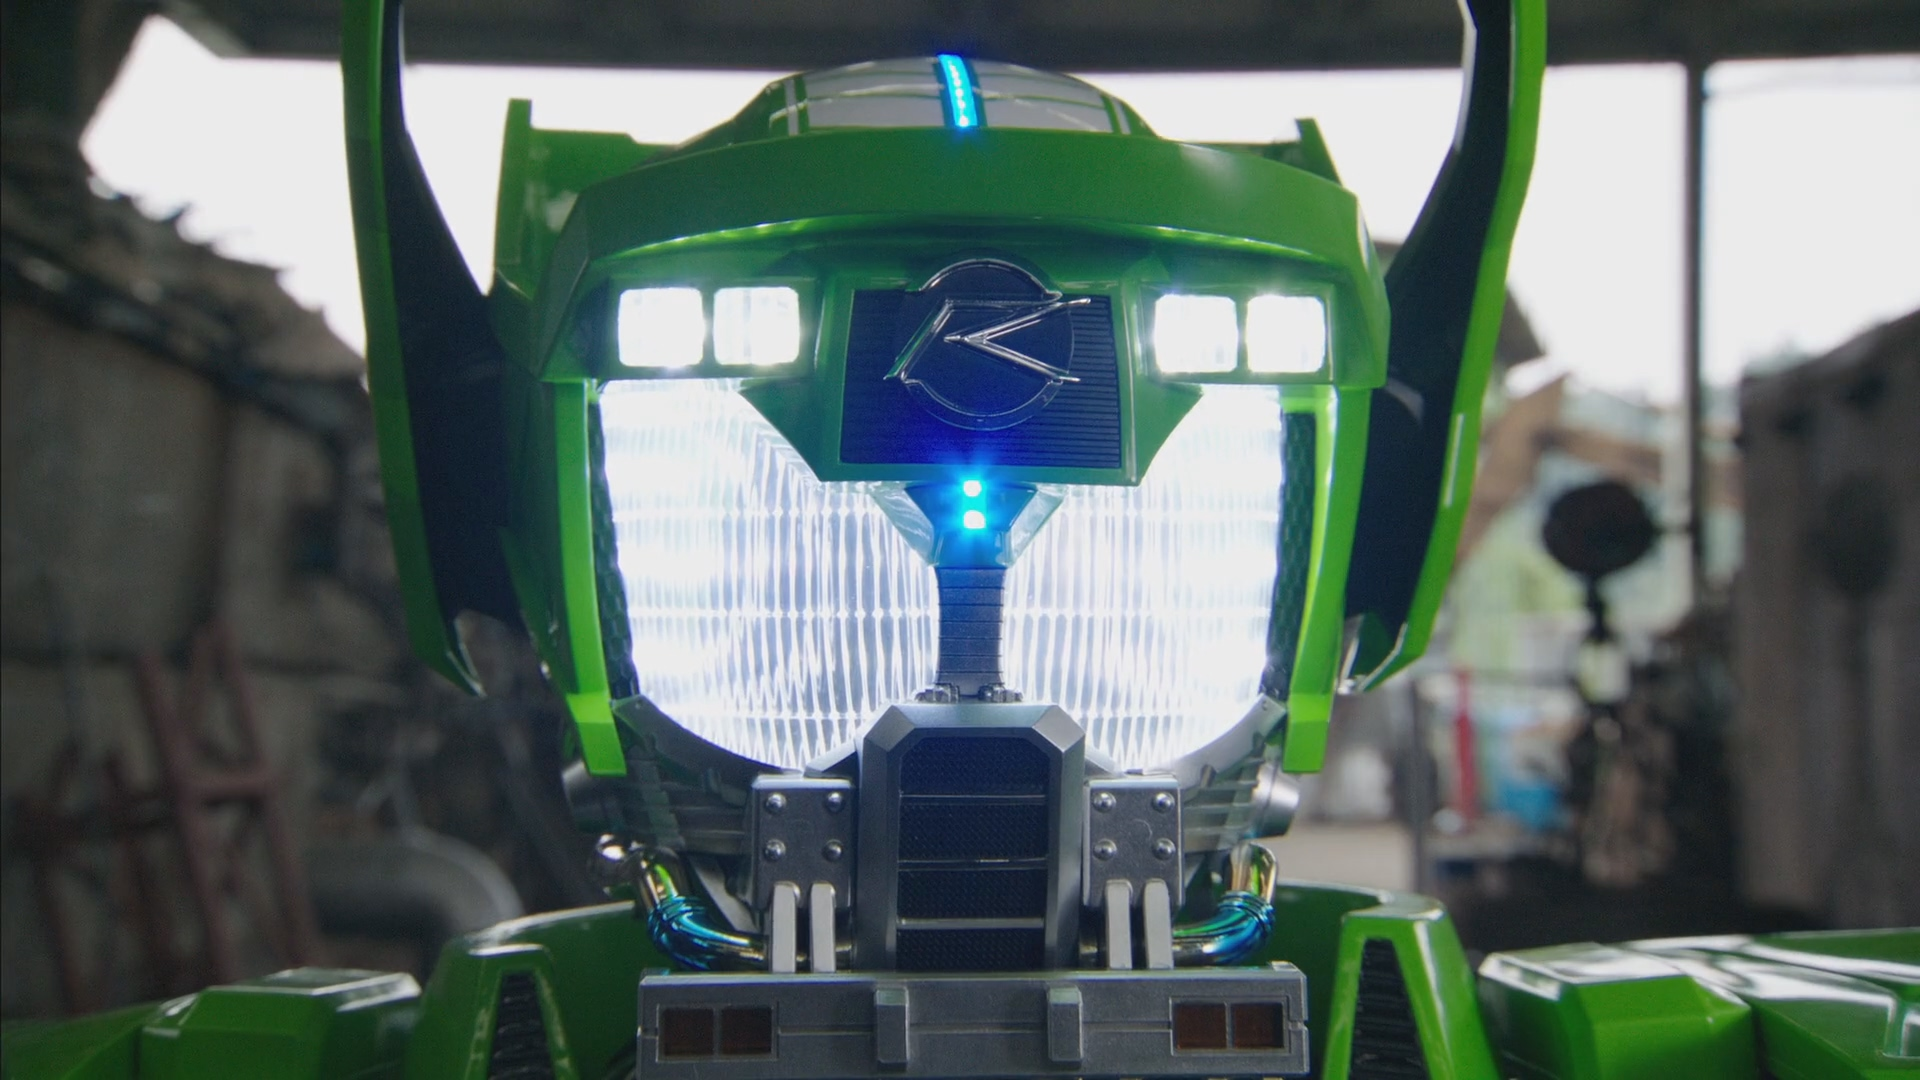 How Can I Get Used to the Cool Body? | Kamen Rider Wiki